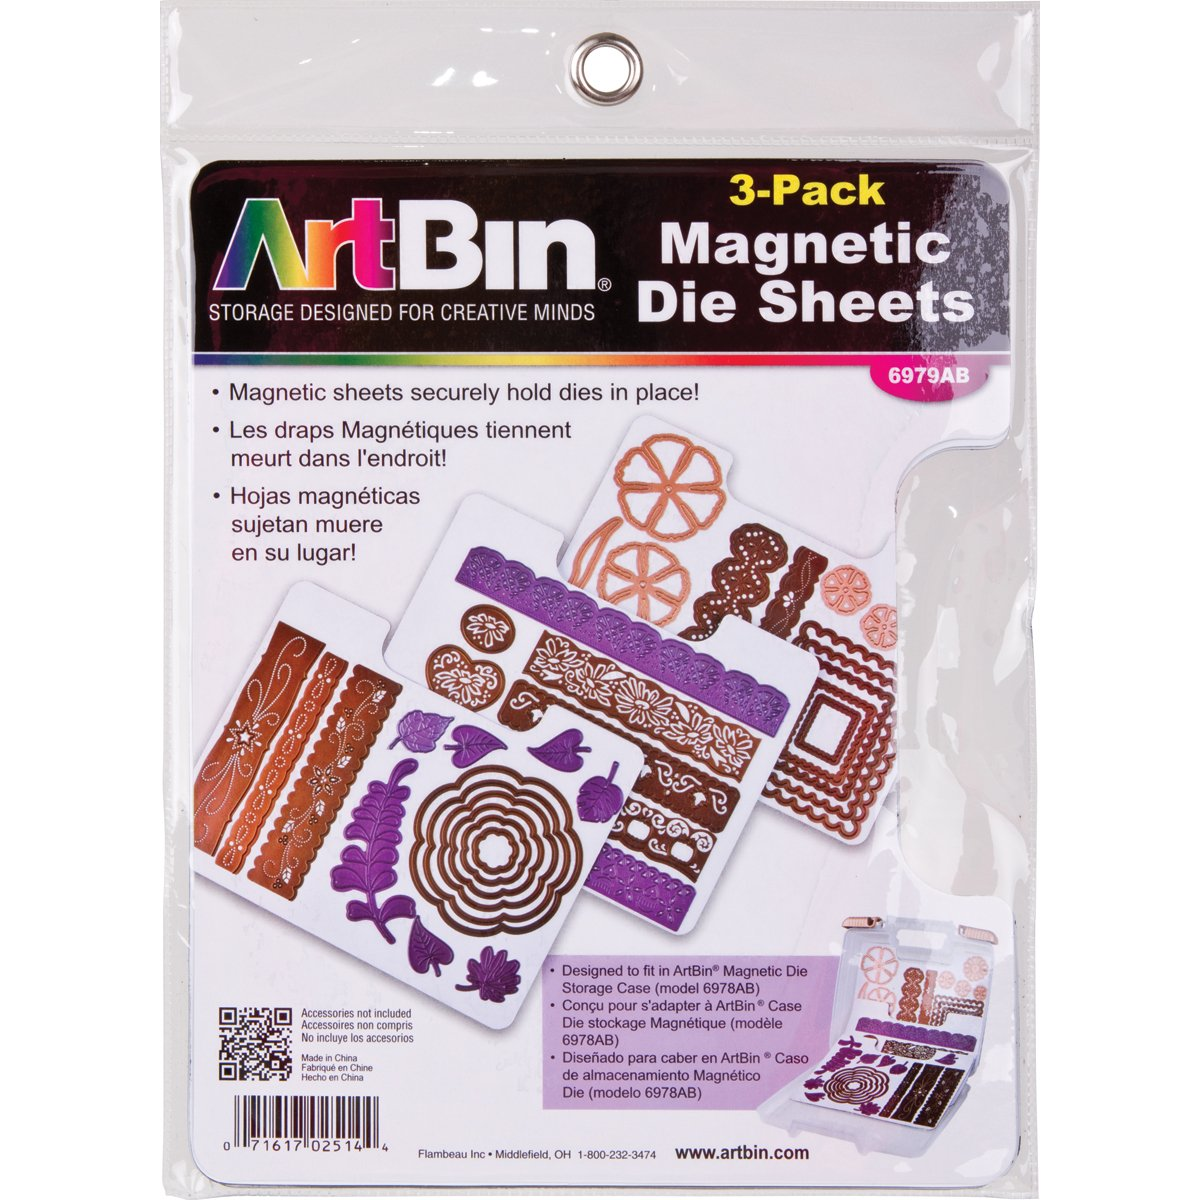 ArtBin Magnetic Die Sheets- 3/Pack 6979AB, refill for 6978AB